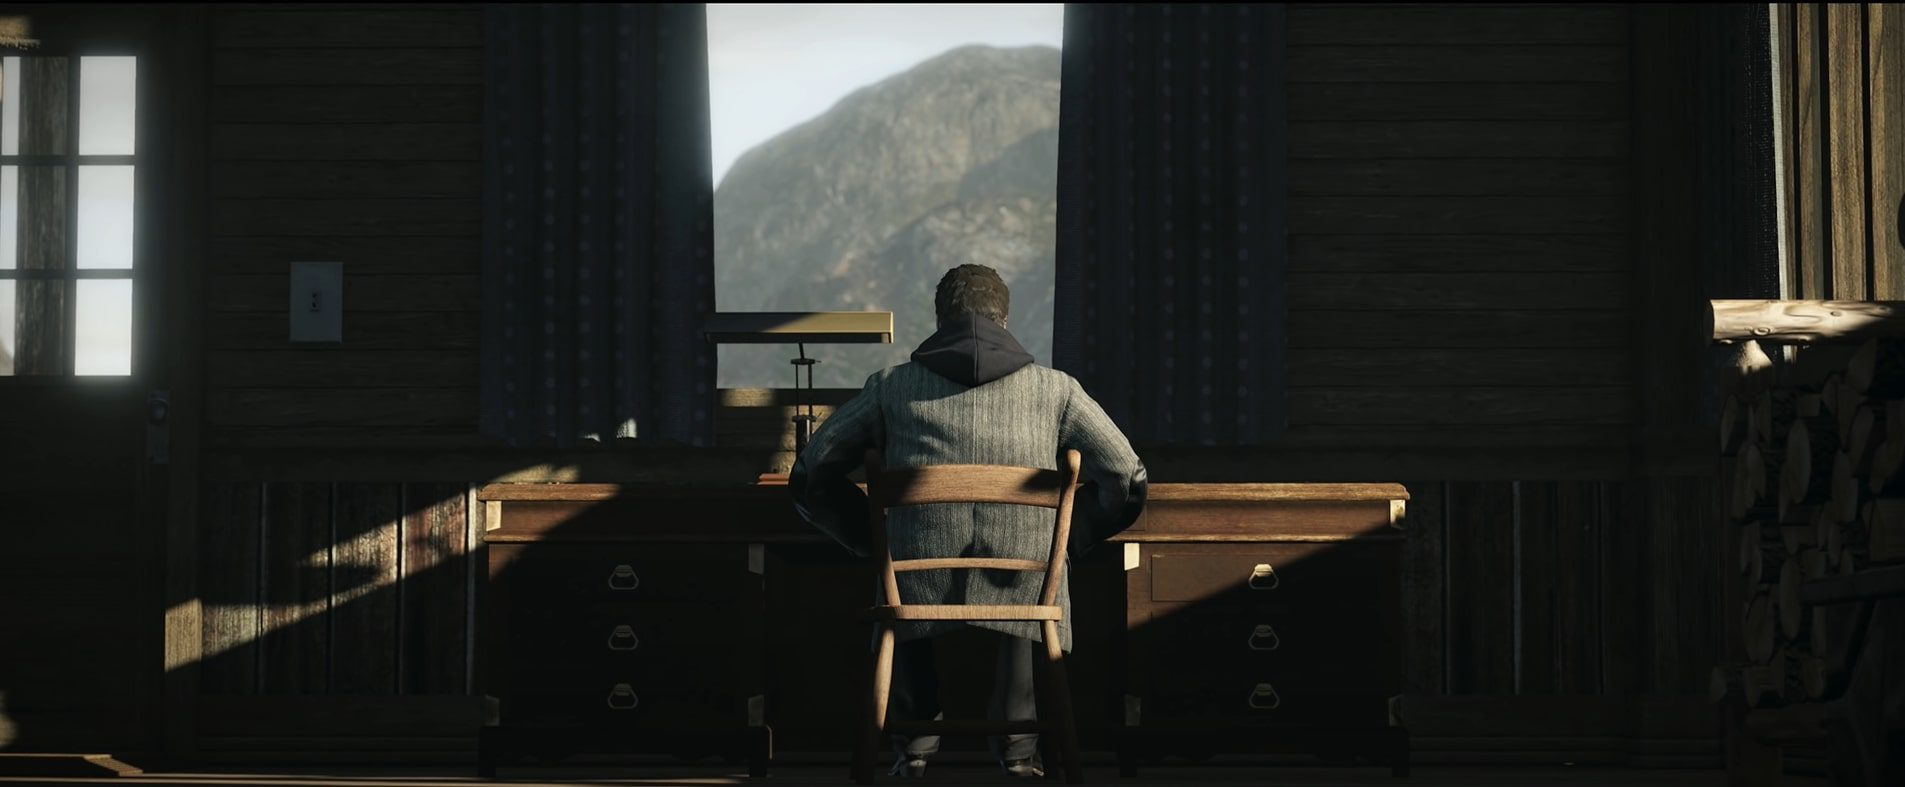 Alan Wake Remastered Game Cast, Release Date, Plot, Trailer And More Everything